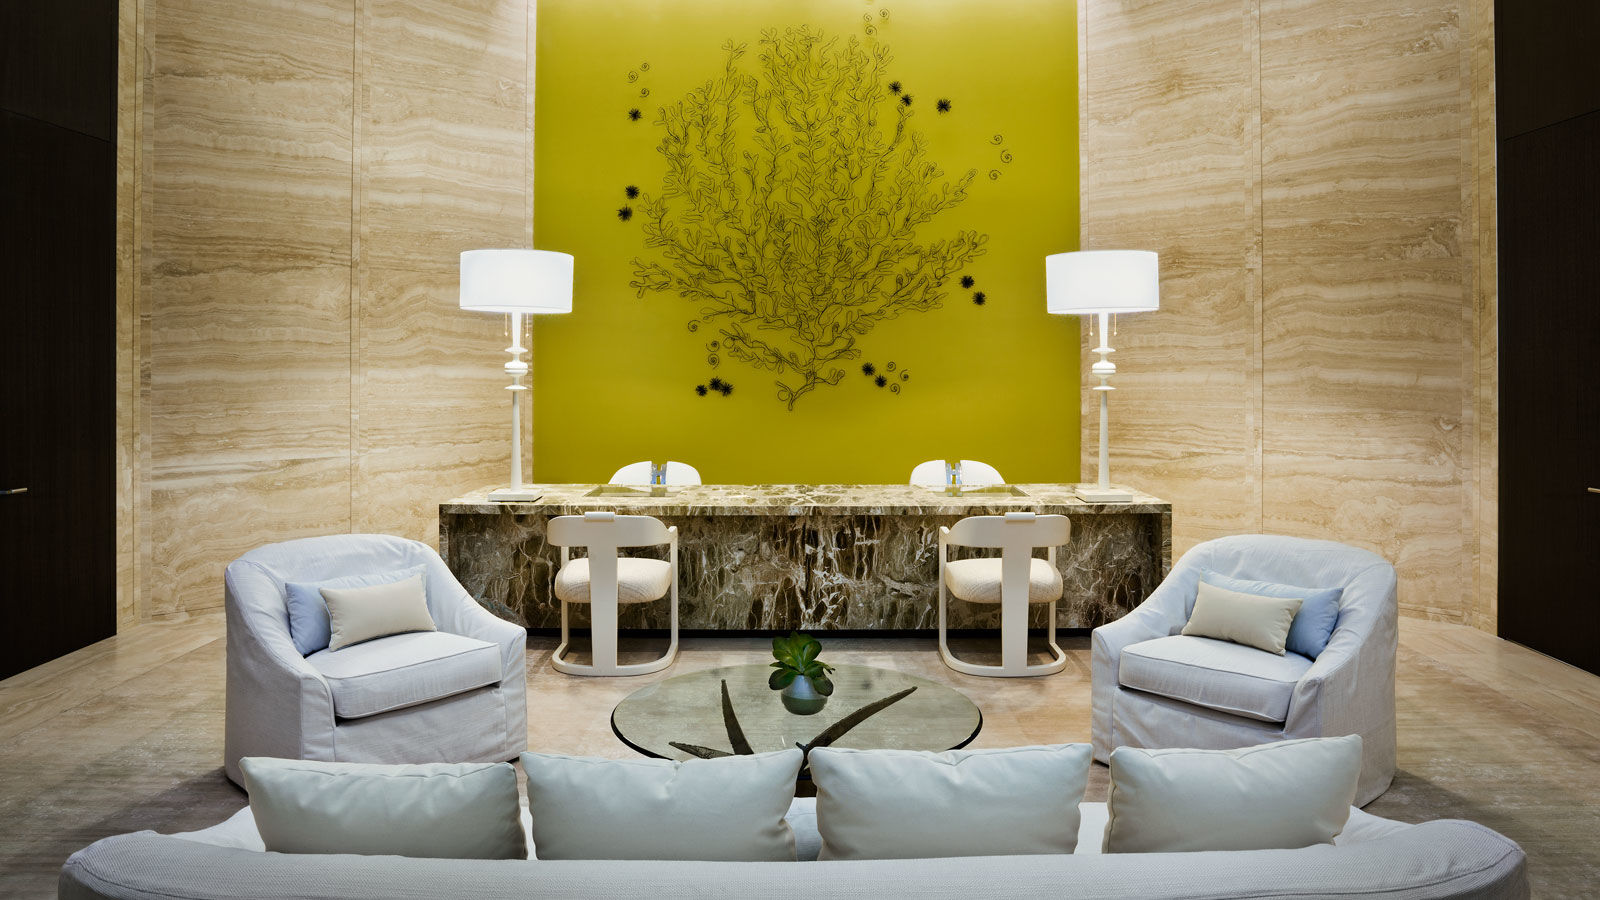 The St. Regis Bal Harbour Resort - Remede Spa